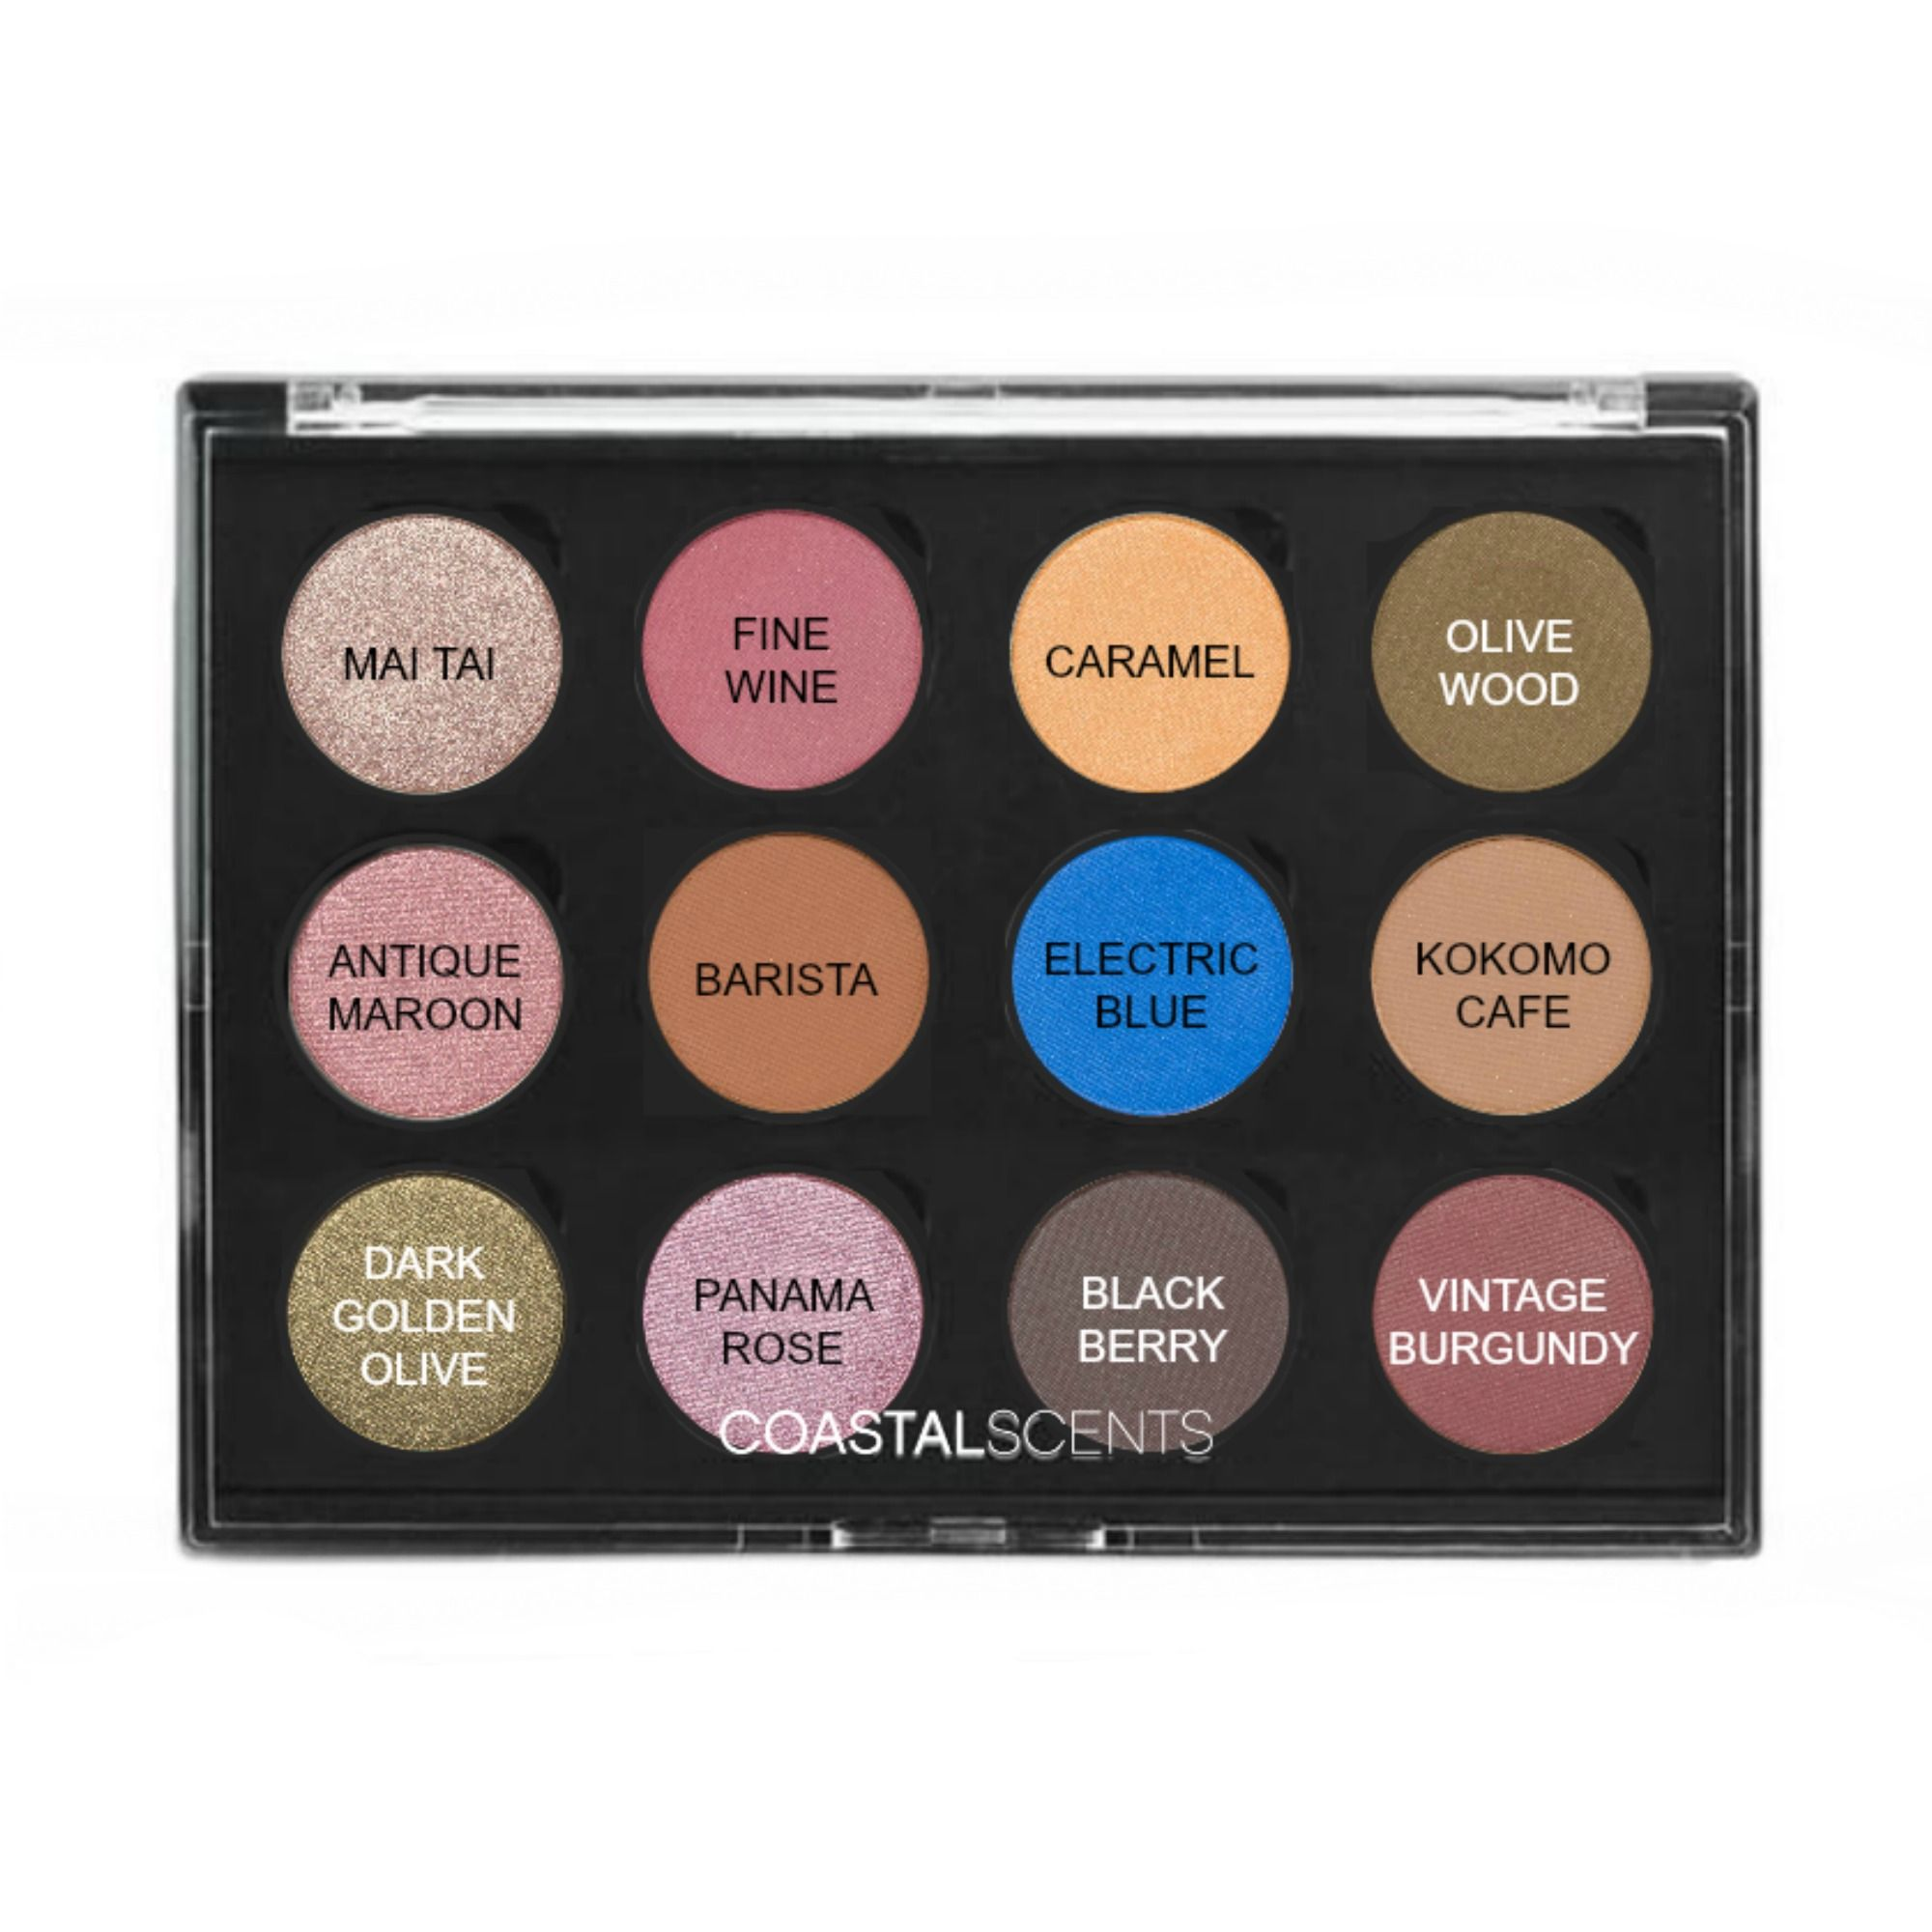 Coastal Scents Custom Palettes are available for 1, 4, 12